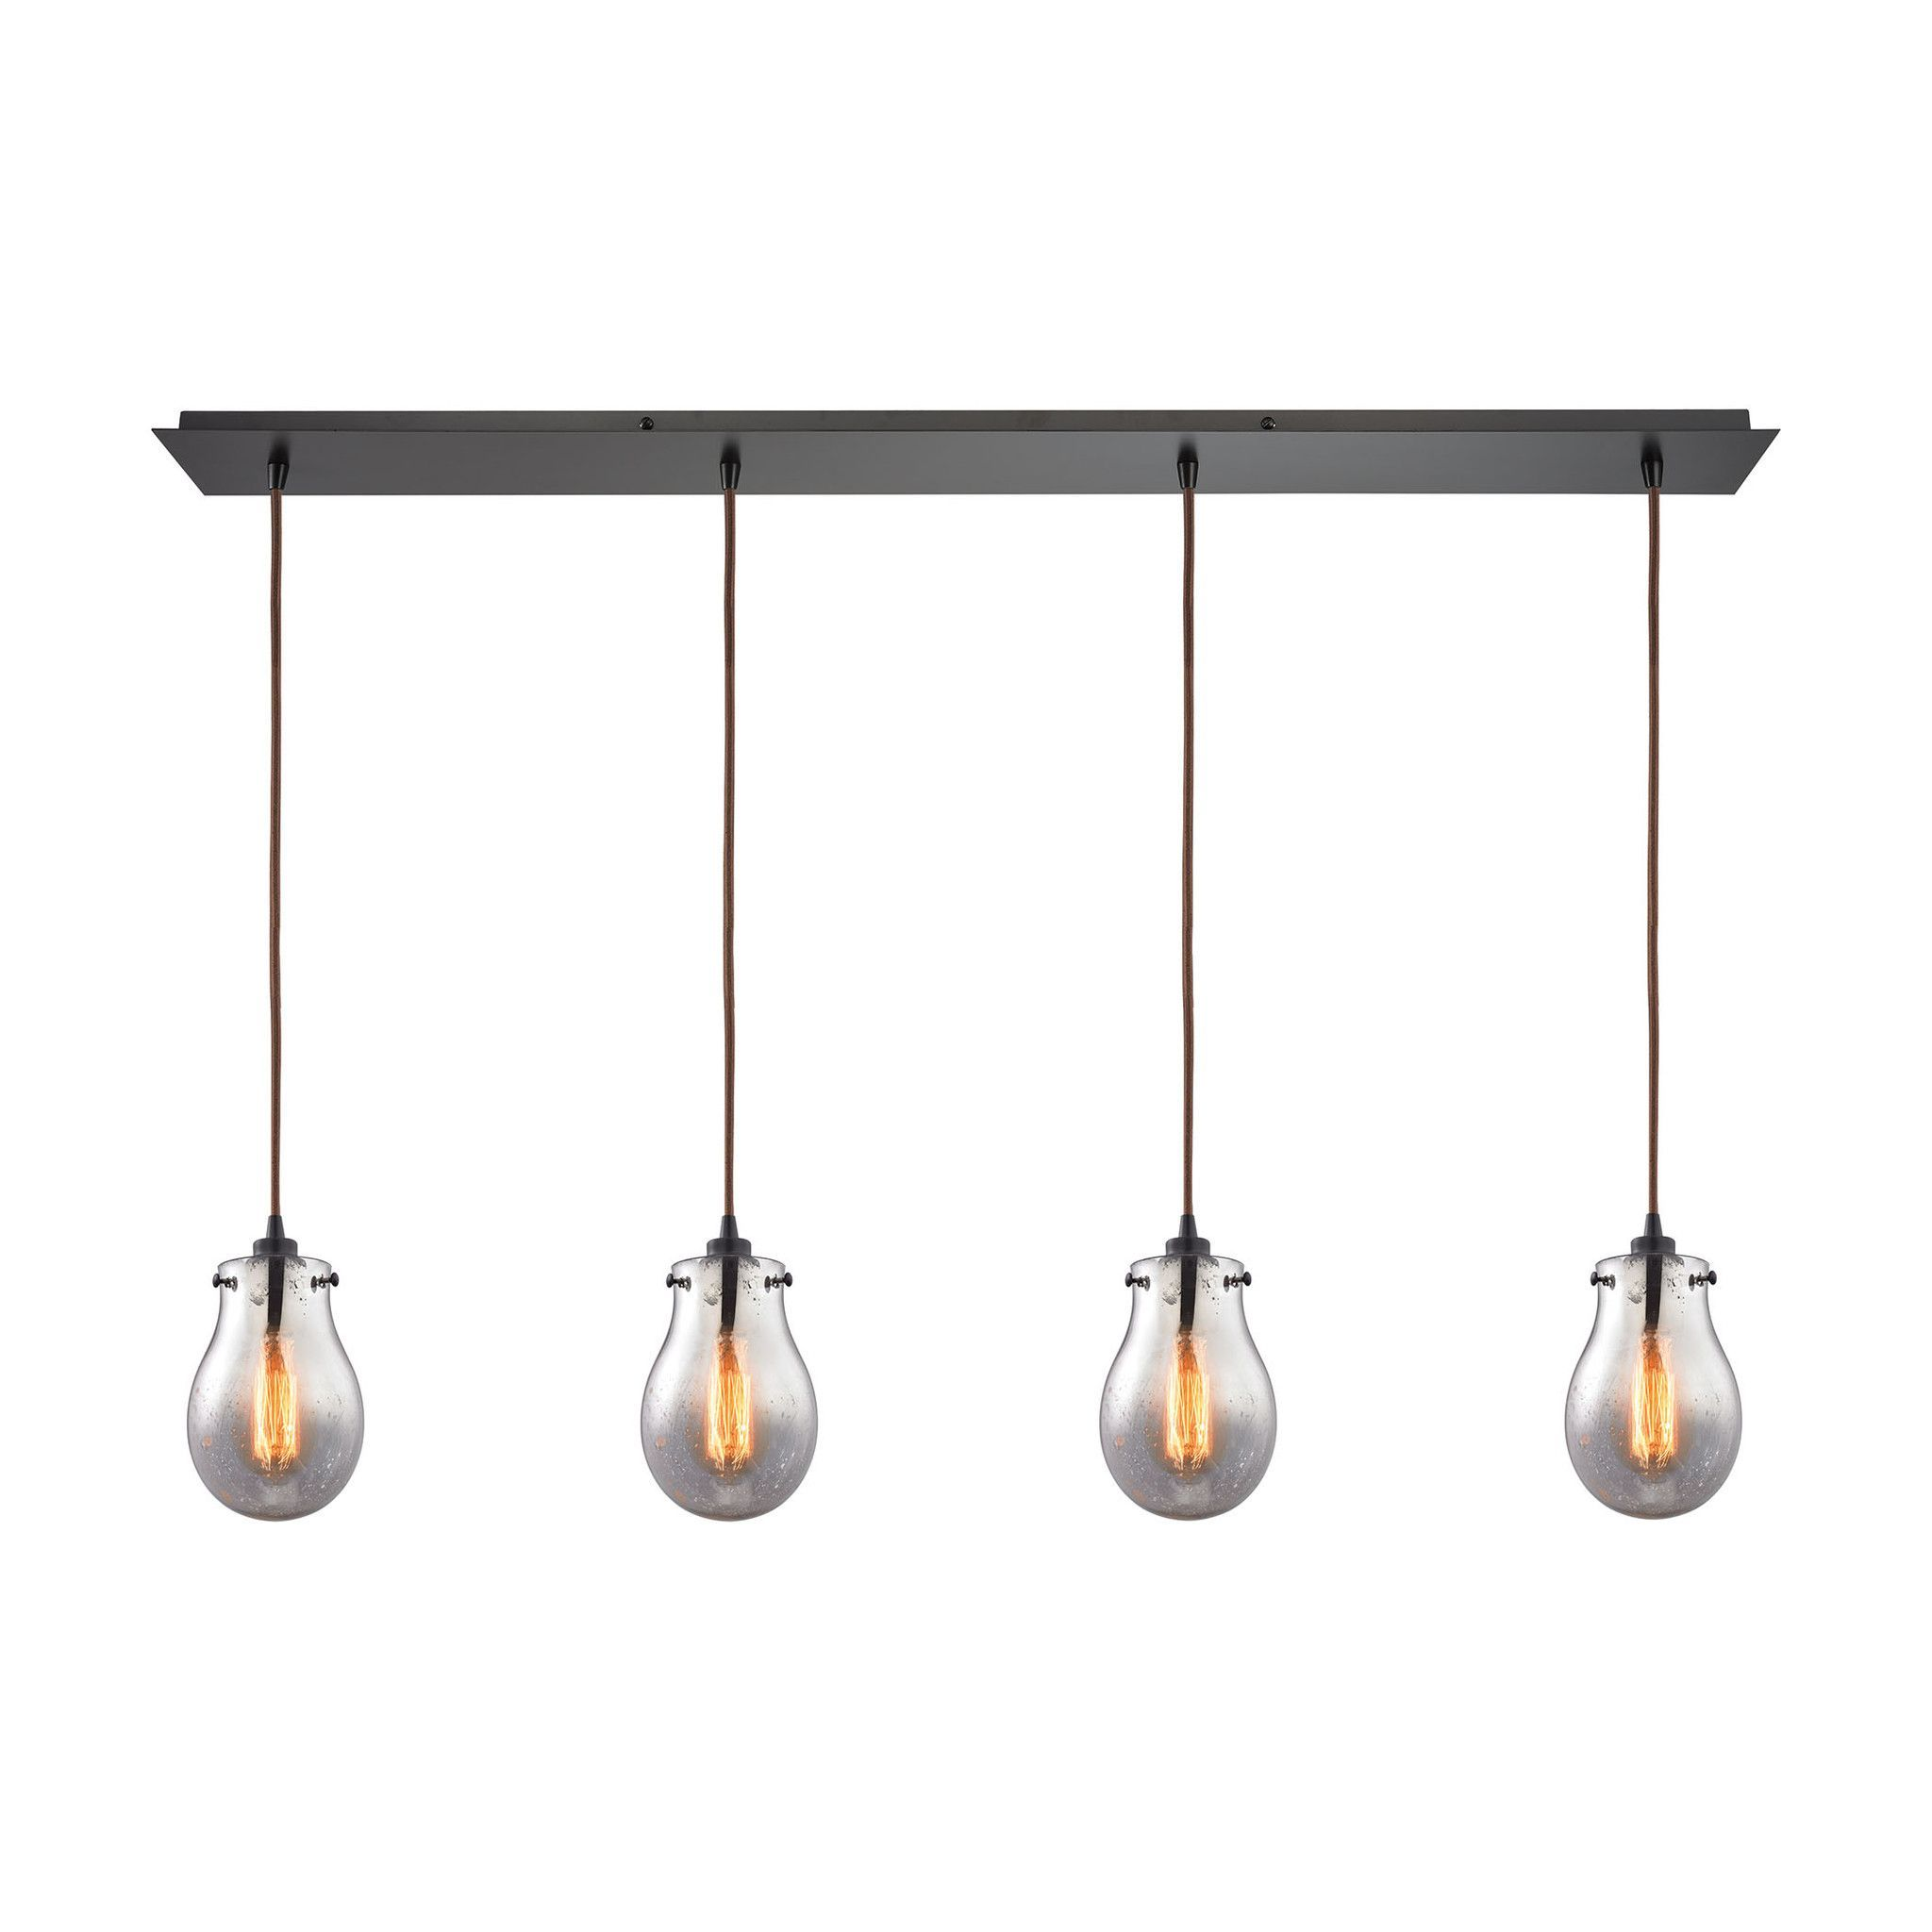 ELK Lighting 31935/4LP Jaelyn Collection Oil Rubbed Bronze Finish